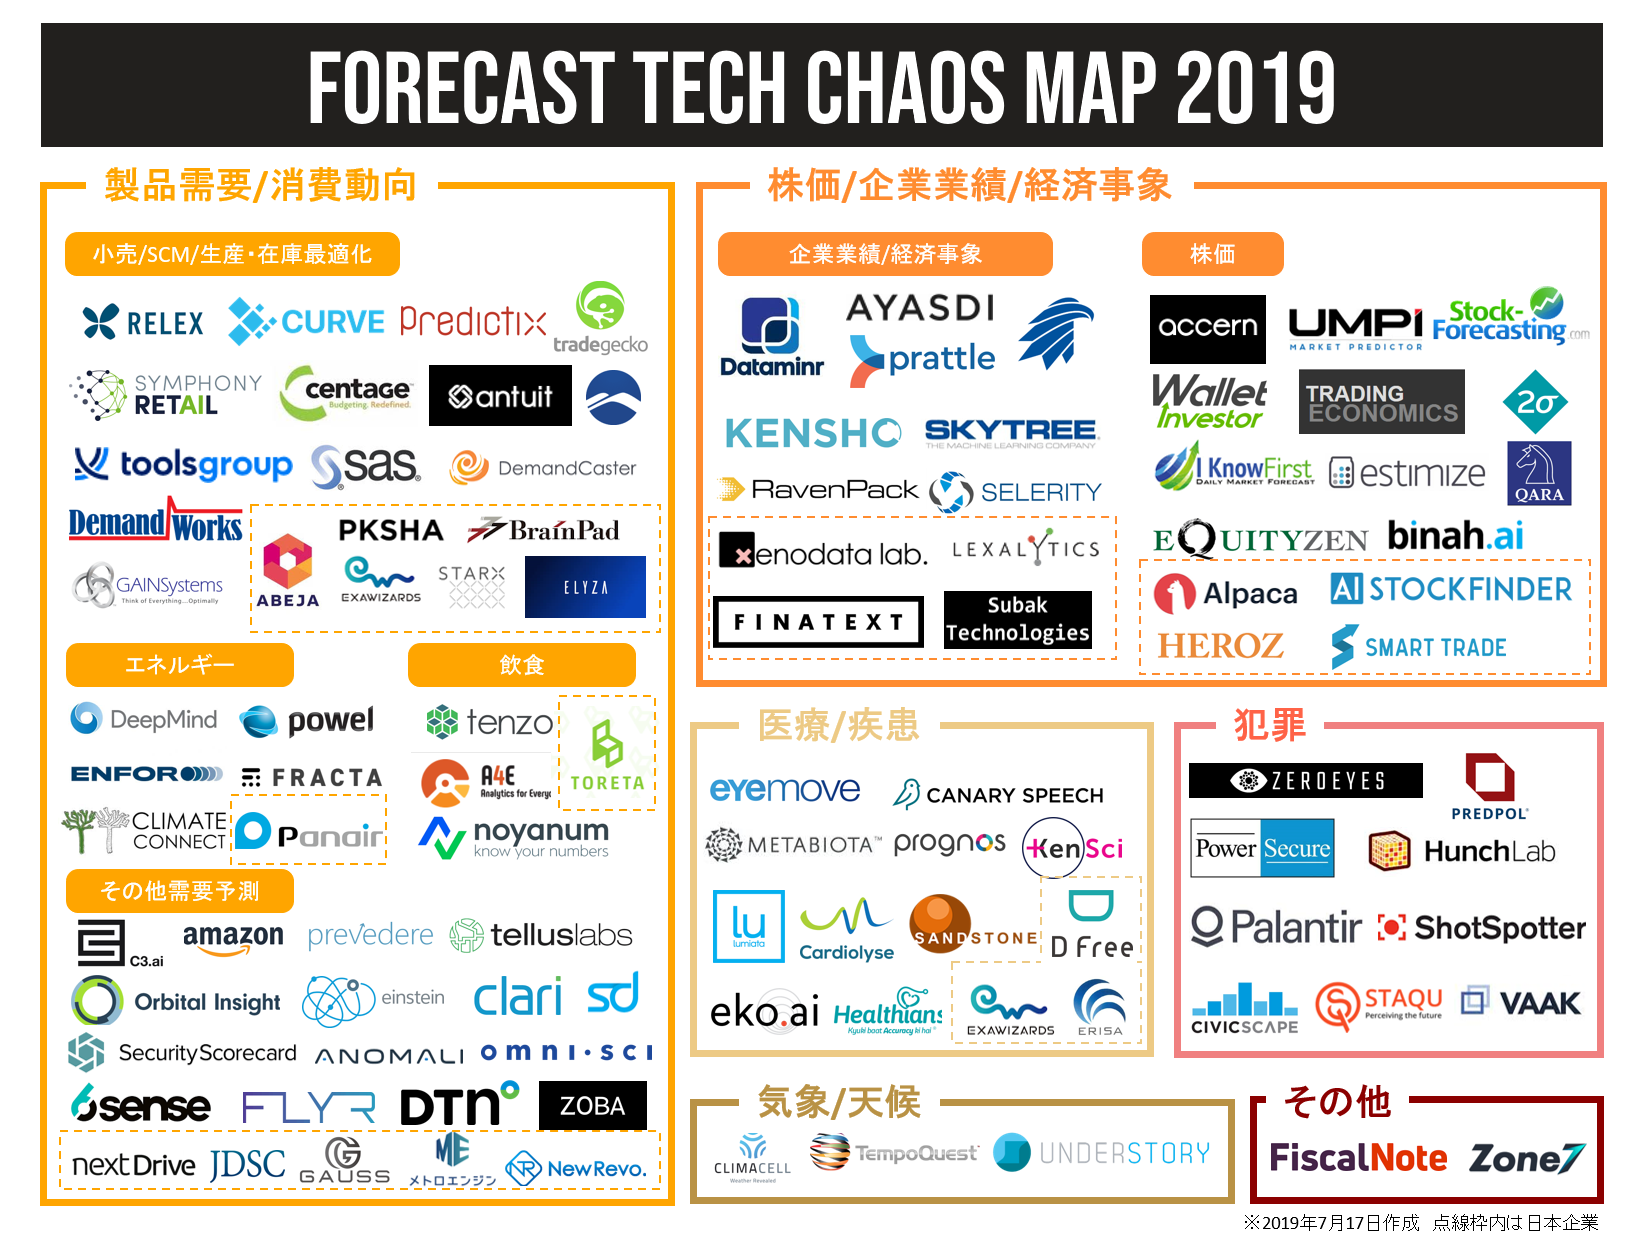 FORECAST TECH CHAOS MAP 2019